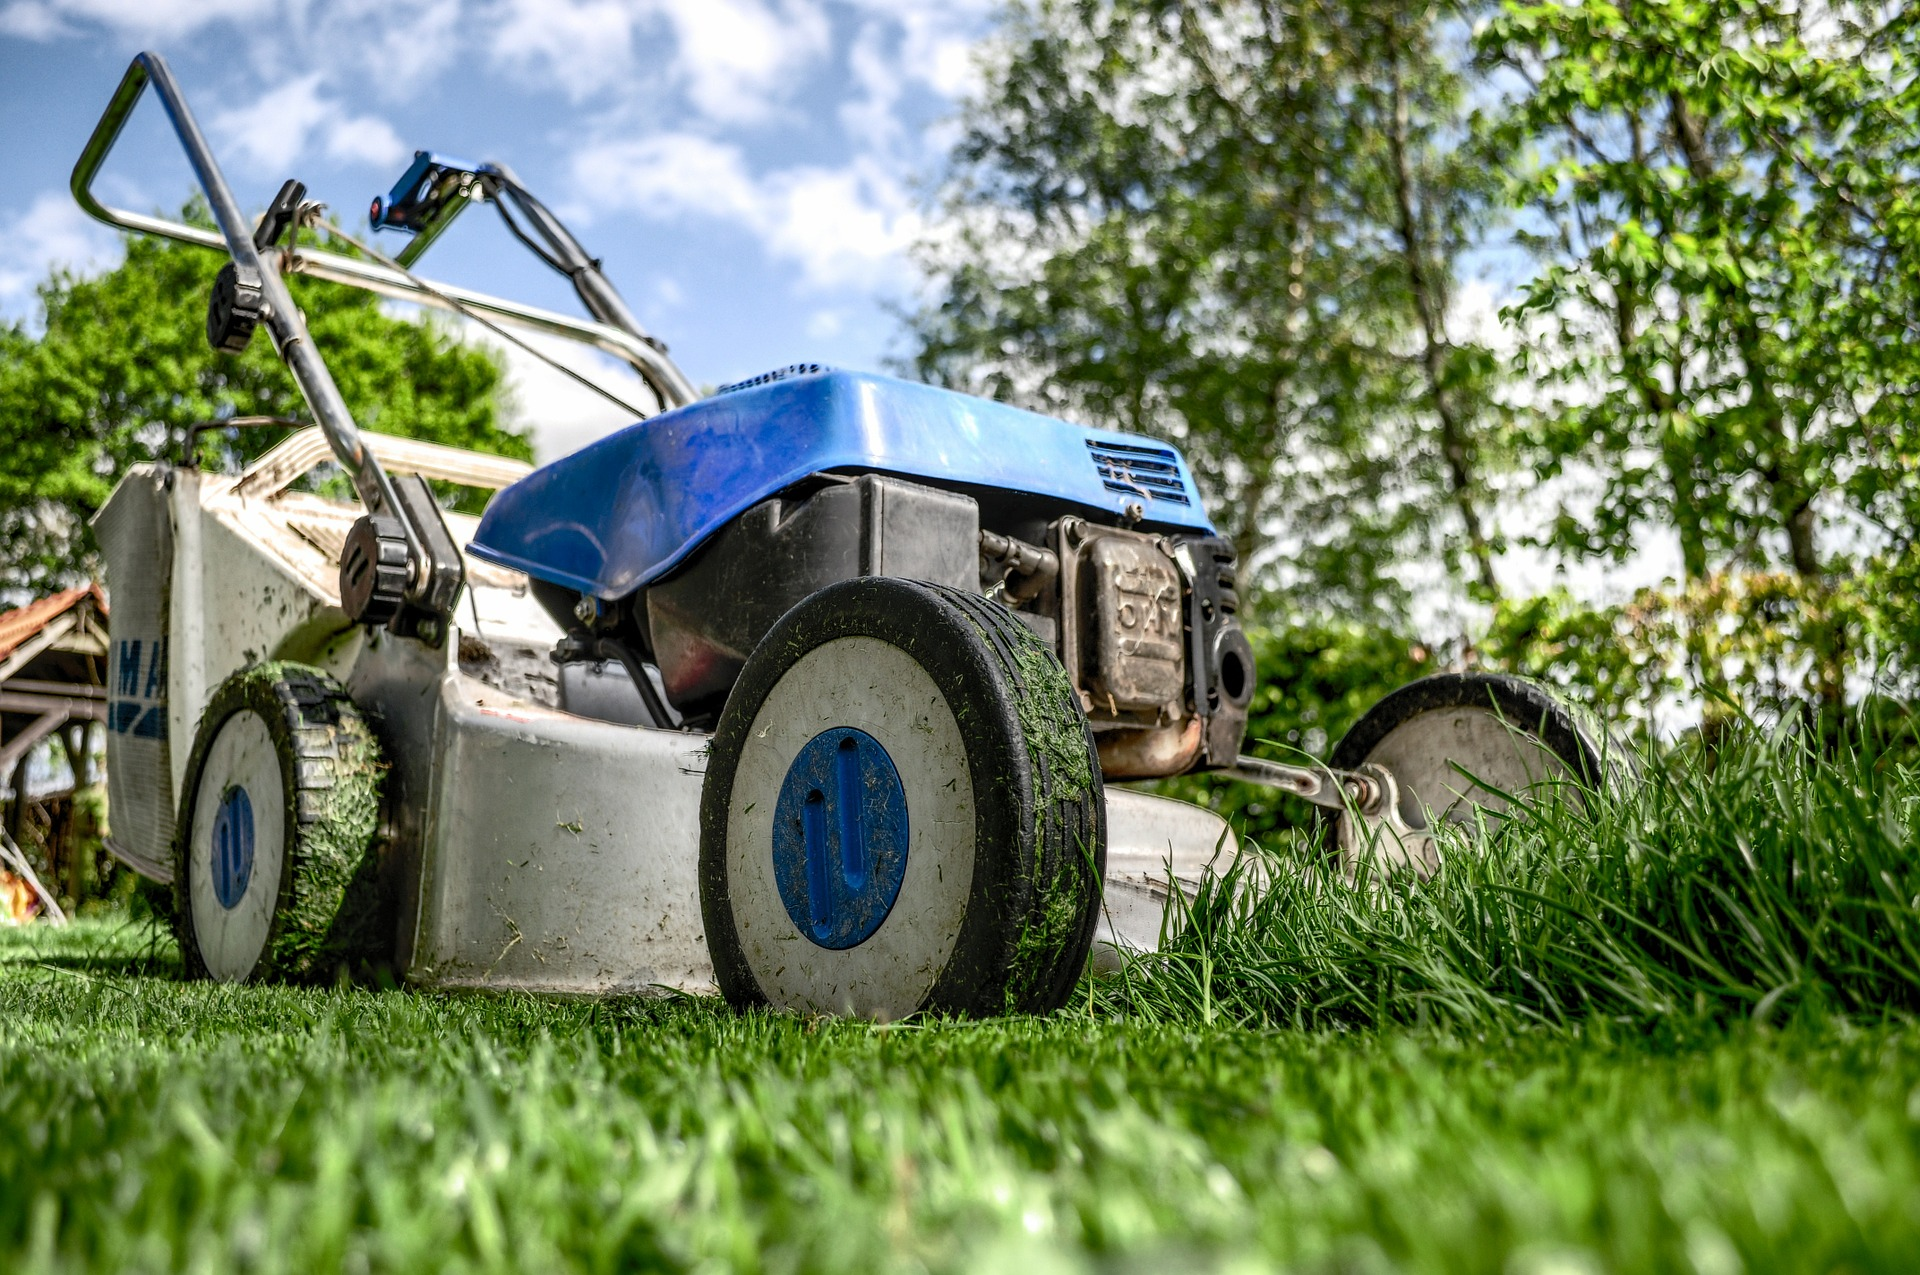 Before you Renew your Lawn Maintenance Contract